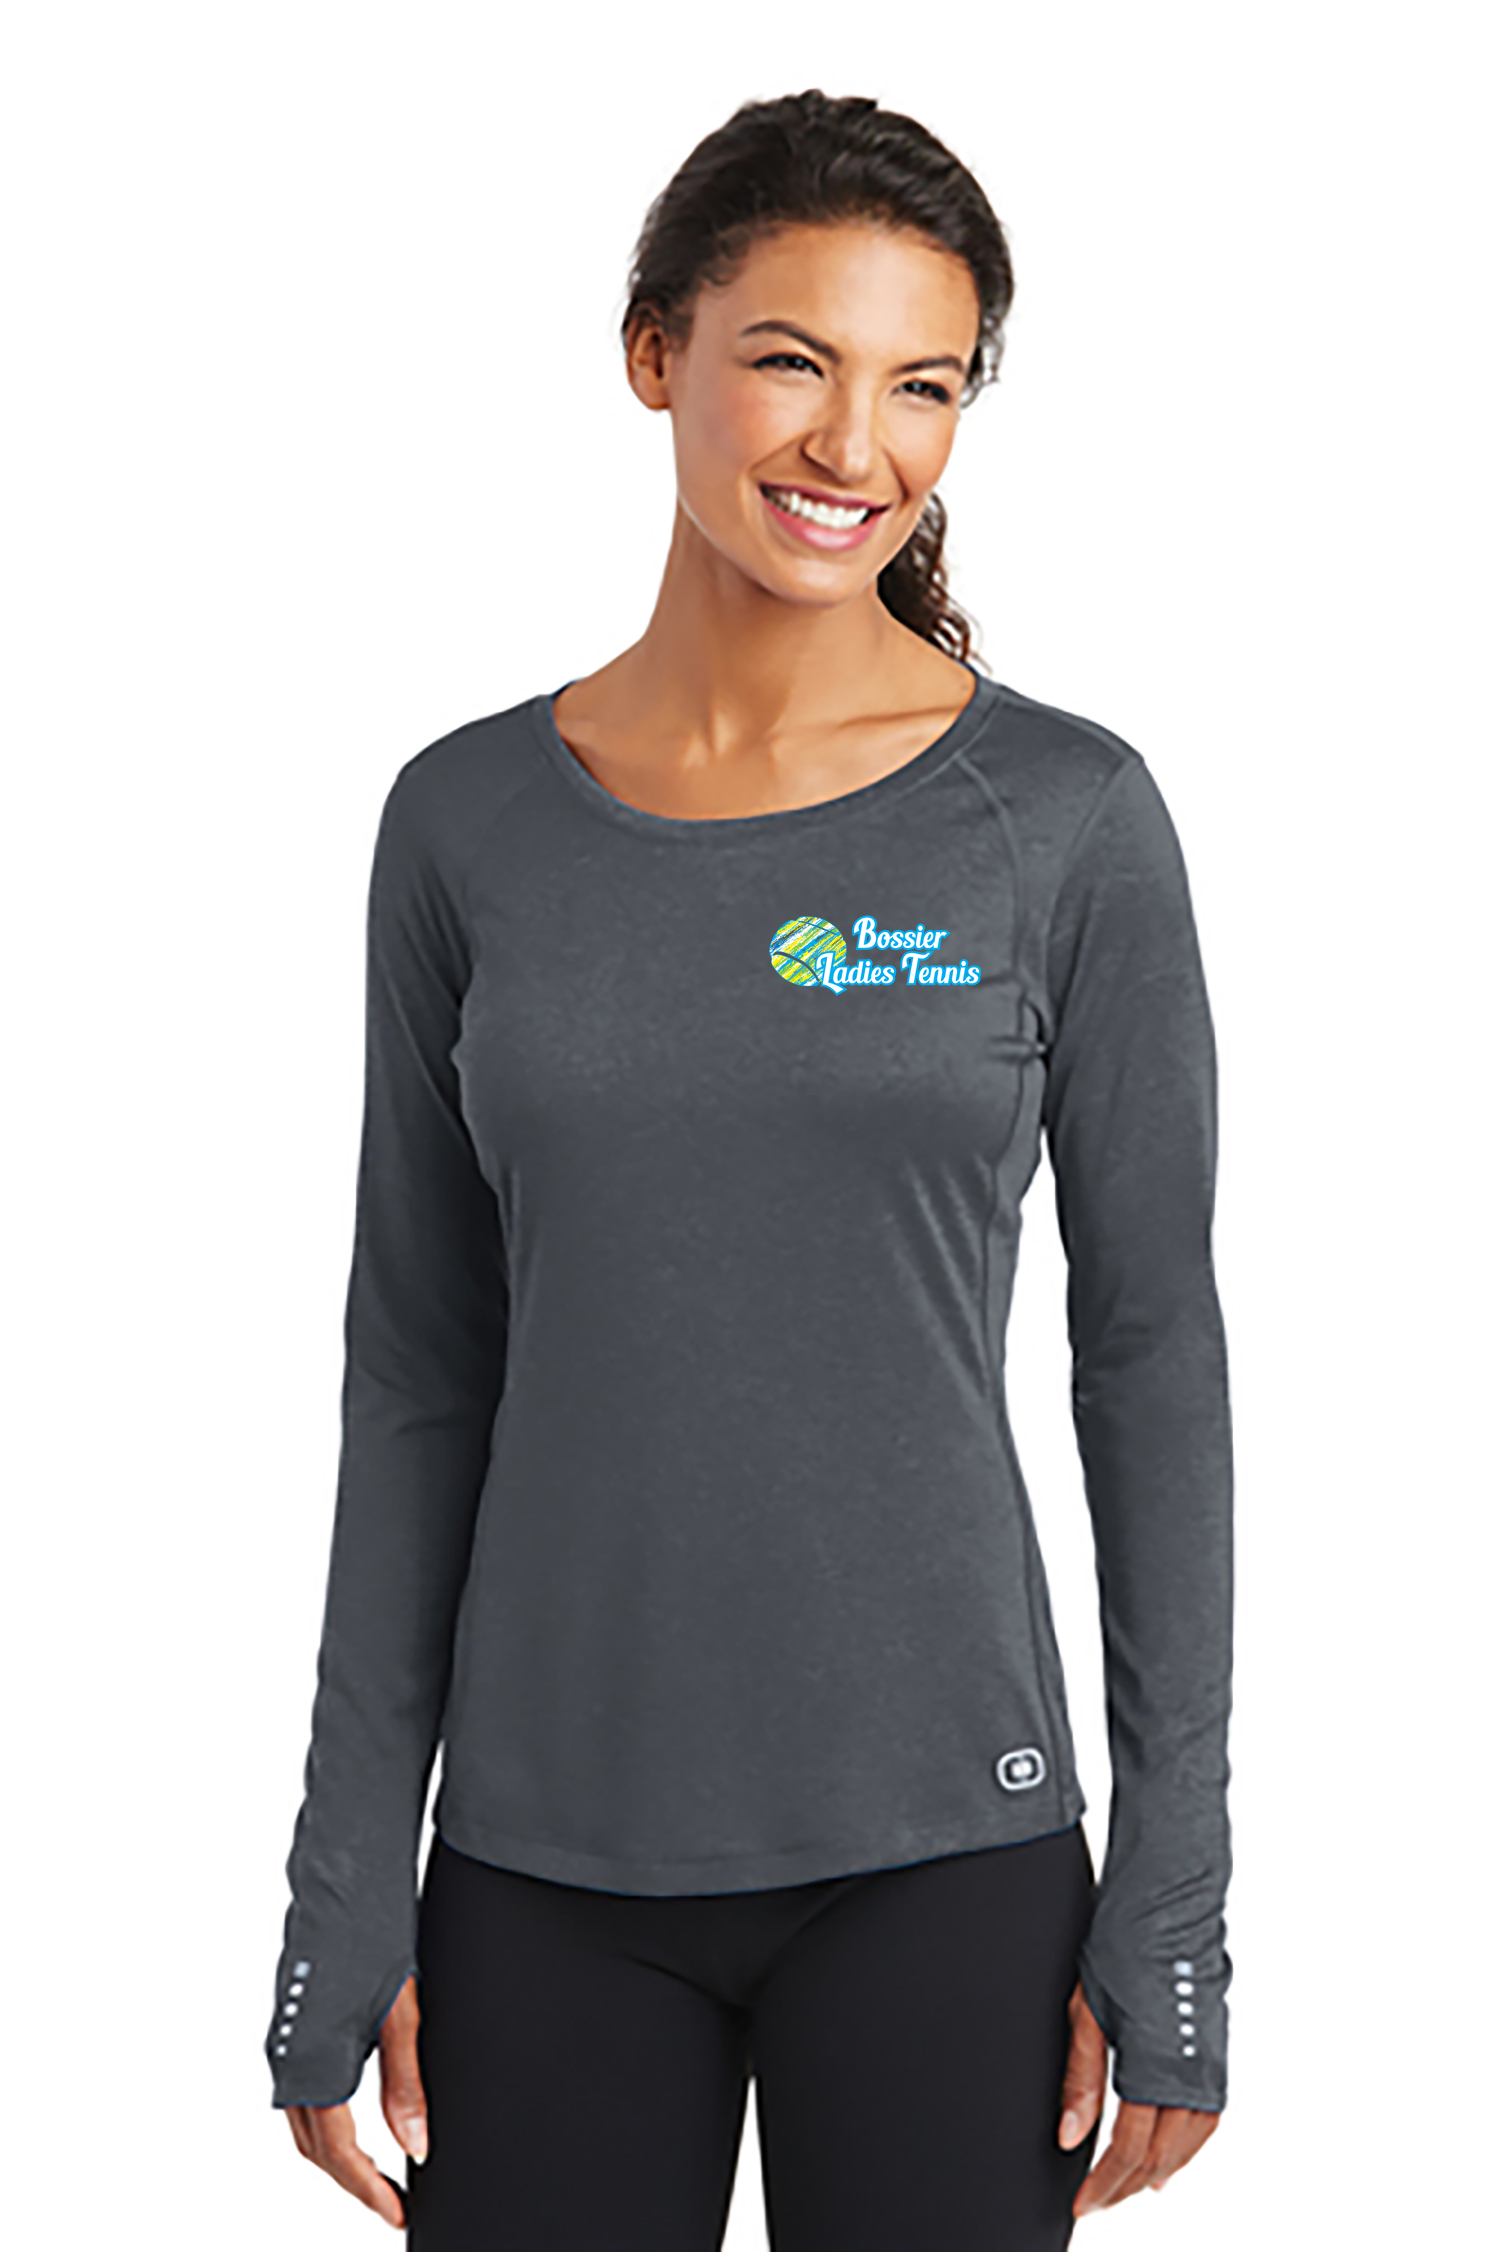 BLT Embroidered Shirts